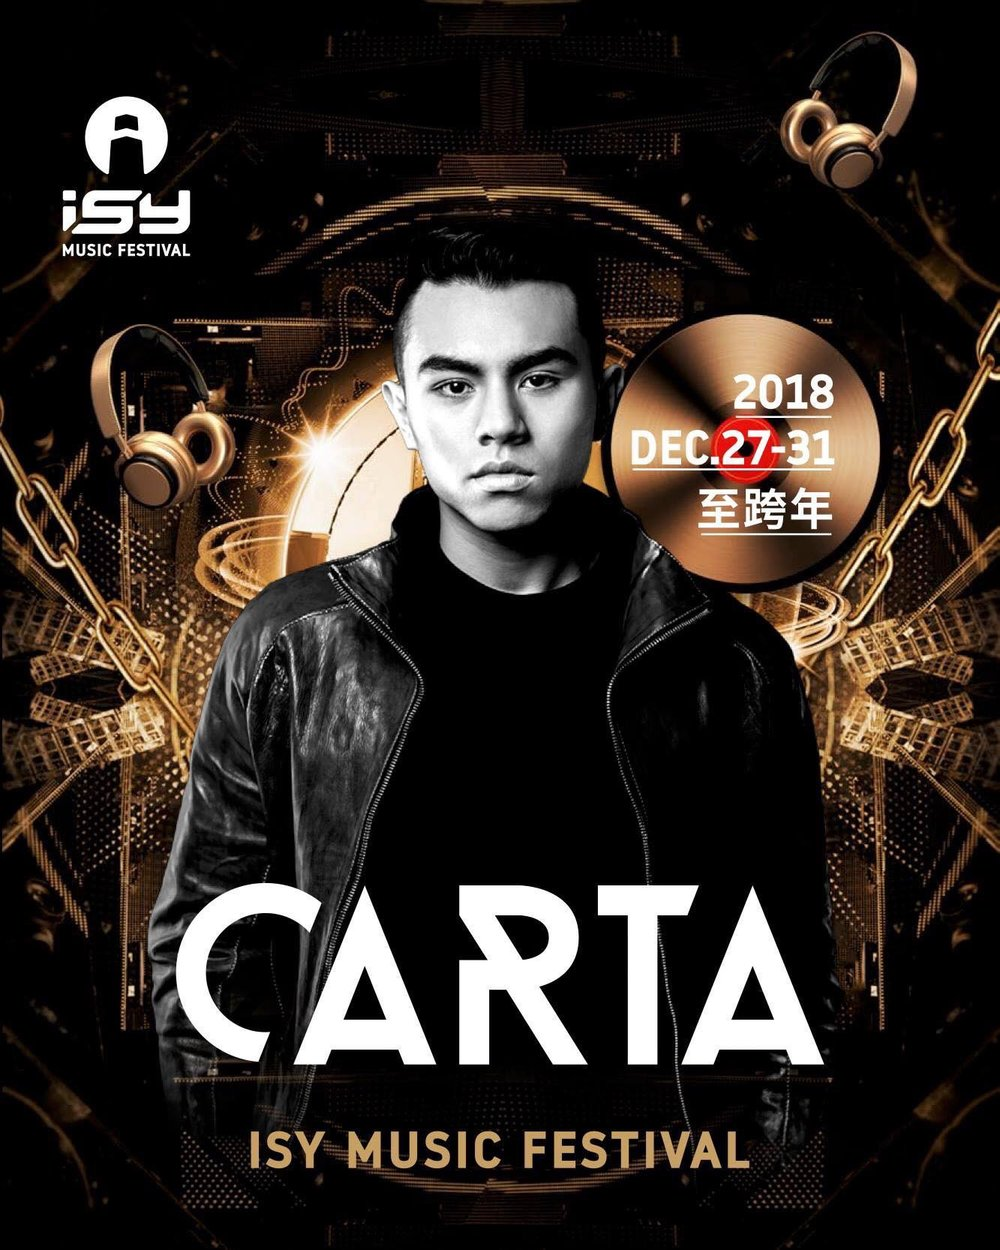 Carta - DJ, producerHe is the first Chinese-based producer to be signed to Spinnin' Records, ranked No.92 in DJ Mag's Top 100, this is the first time a Chinese DJ has made the list.